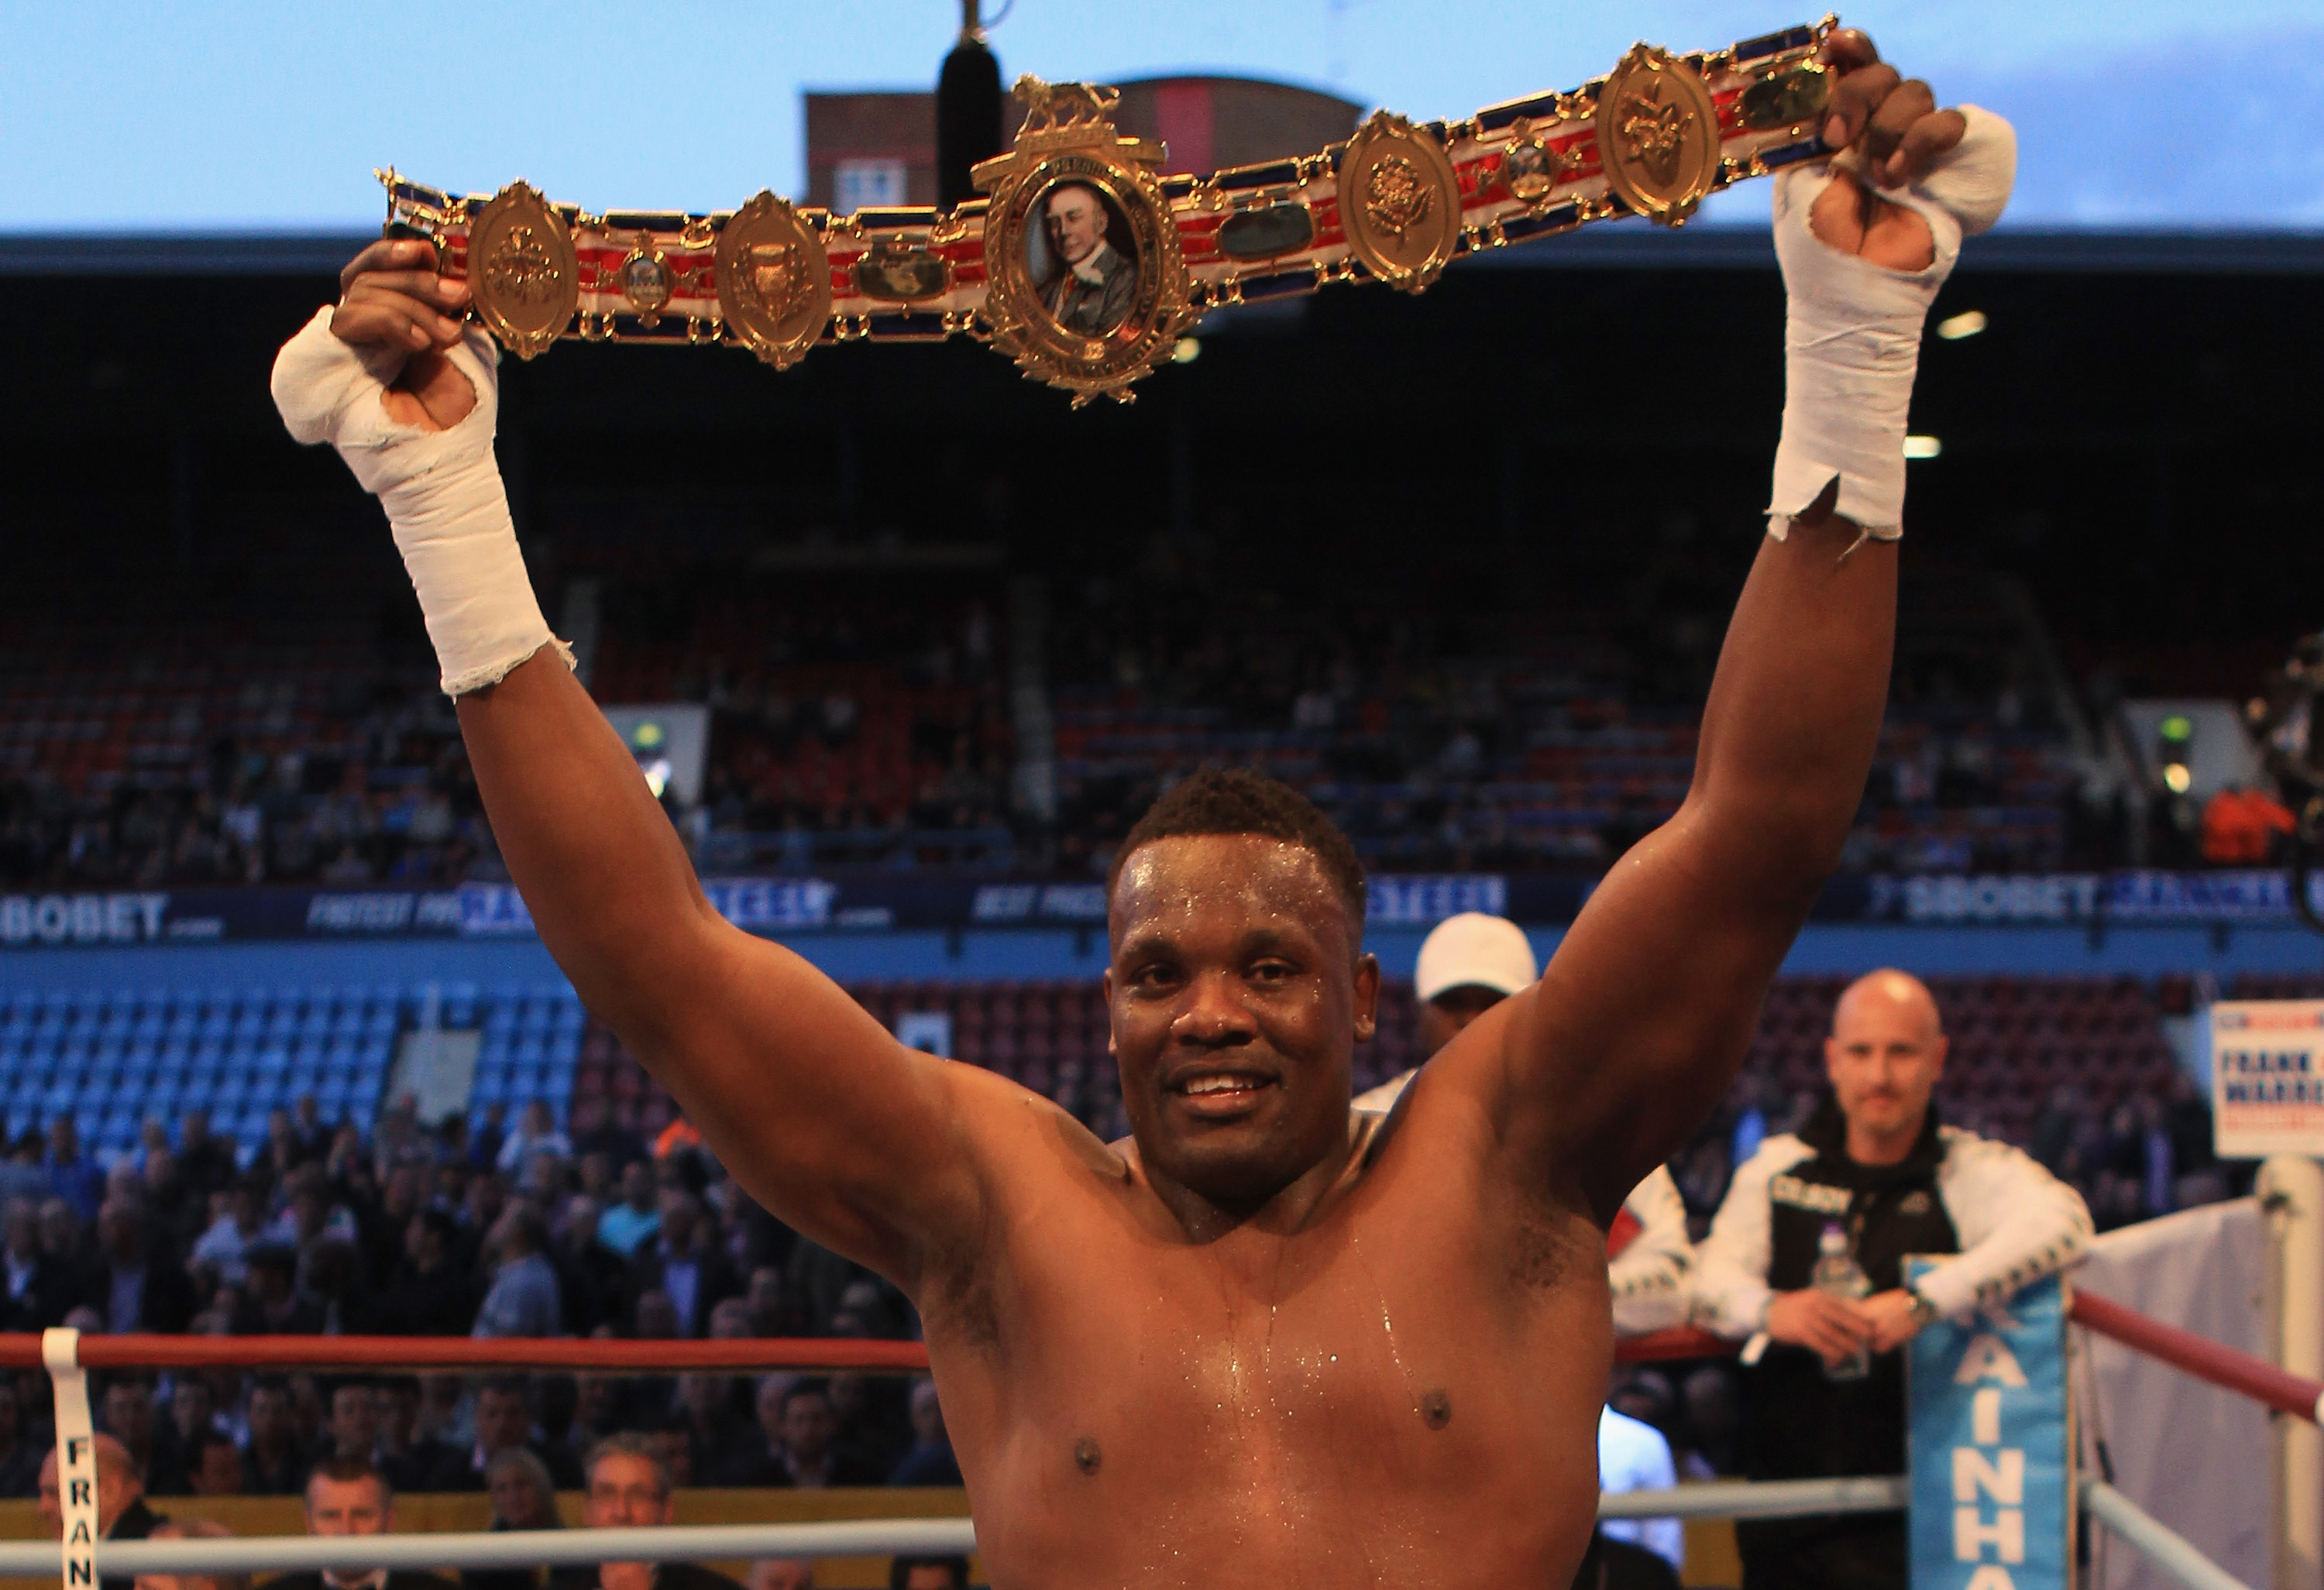 LONDON, ENGLAND - MAY 15:  Derek Chisora celebrates beating Danny Williams for The British Heavyweight Championship at Boleyn Ground on May 15, 2010 in London, England.  (Photo by Warren Little/Getty Images)